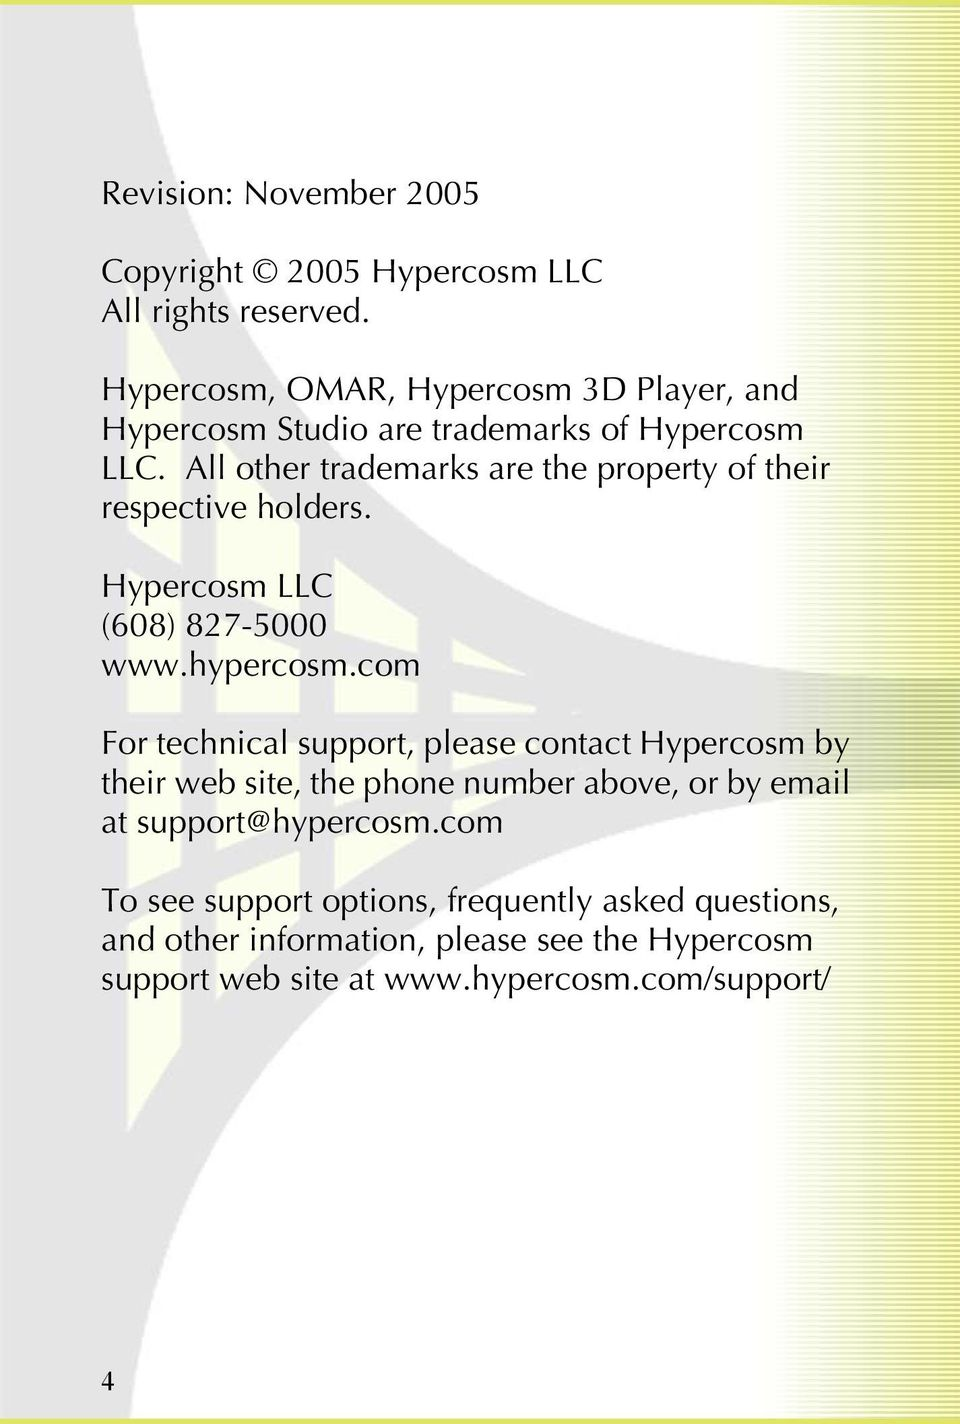 All other trademarks are the property of their respective holders. Hypercosm LLC (608) 827-5000 www.hypercosm.